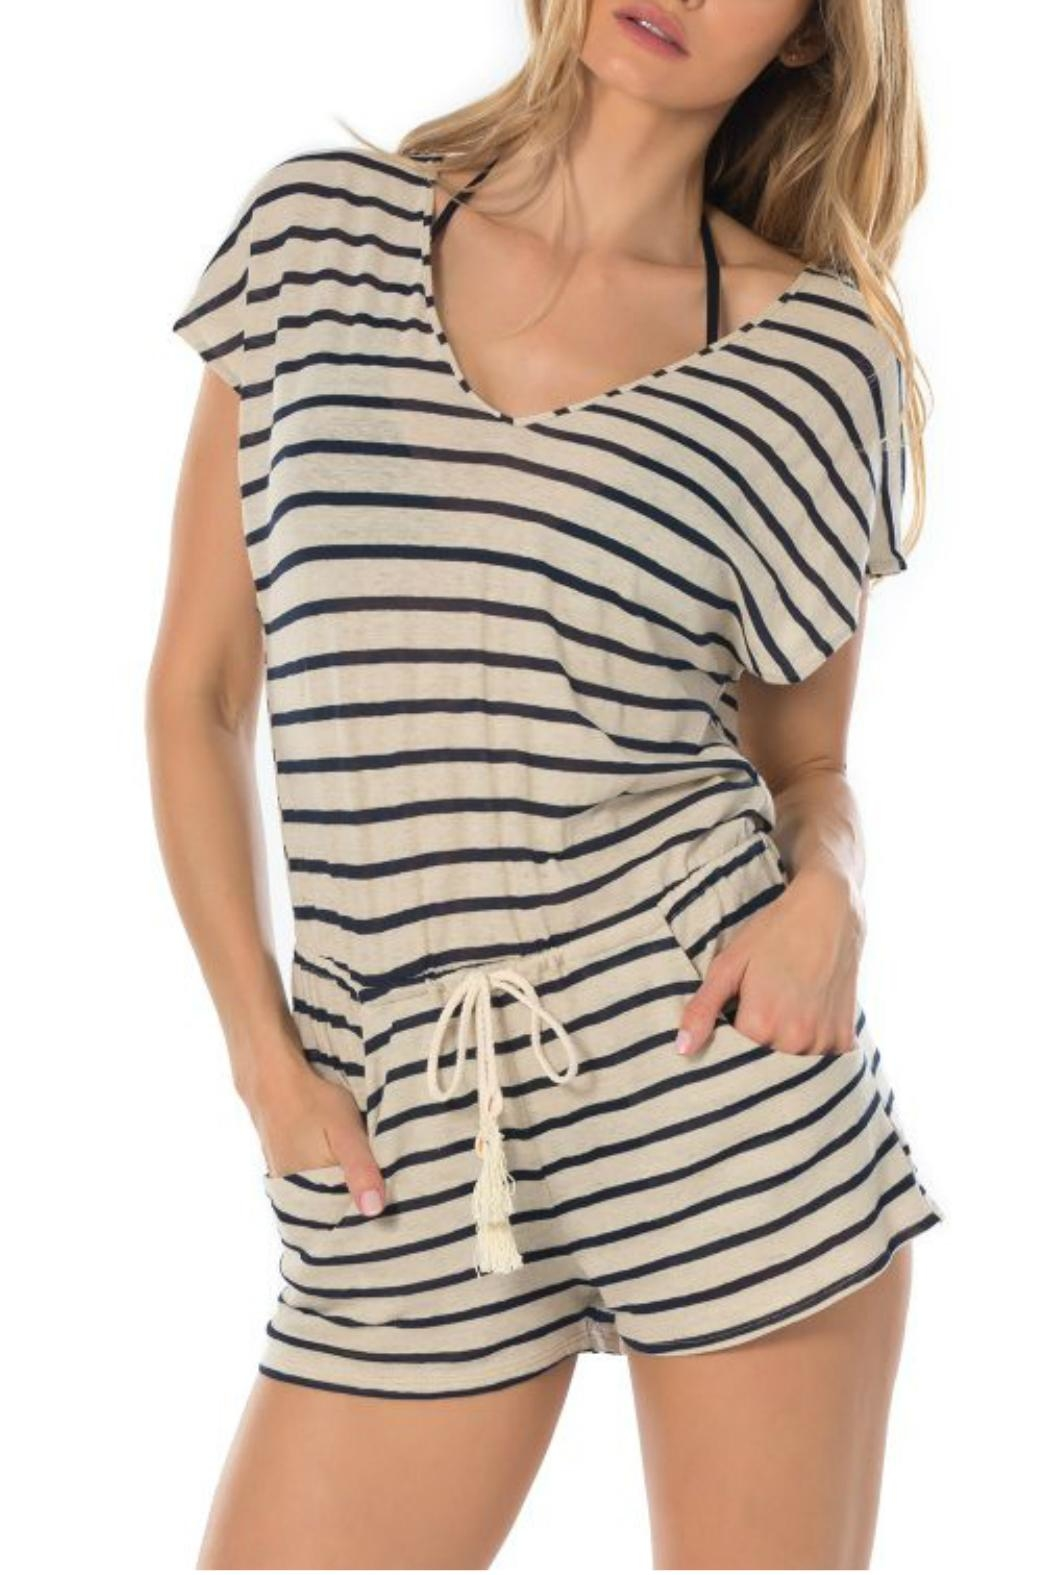 Becca Beach Striped Romper - Main Image